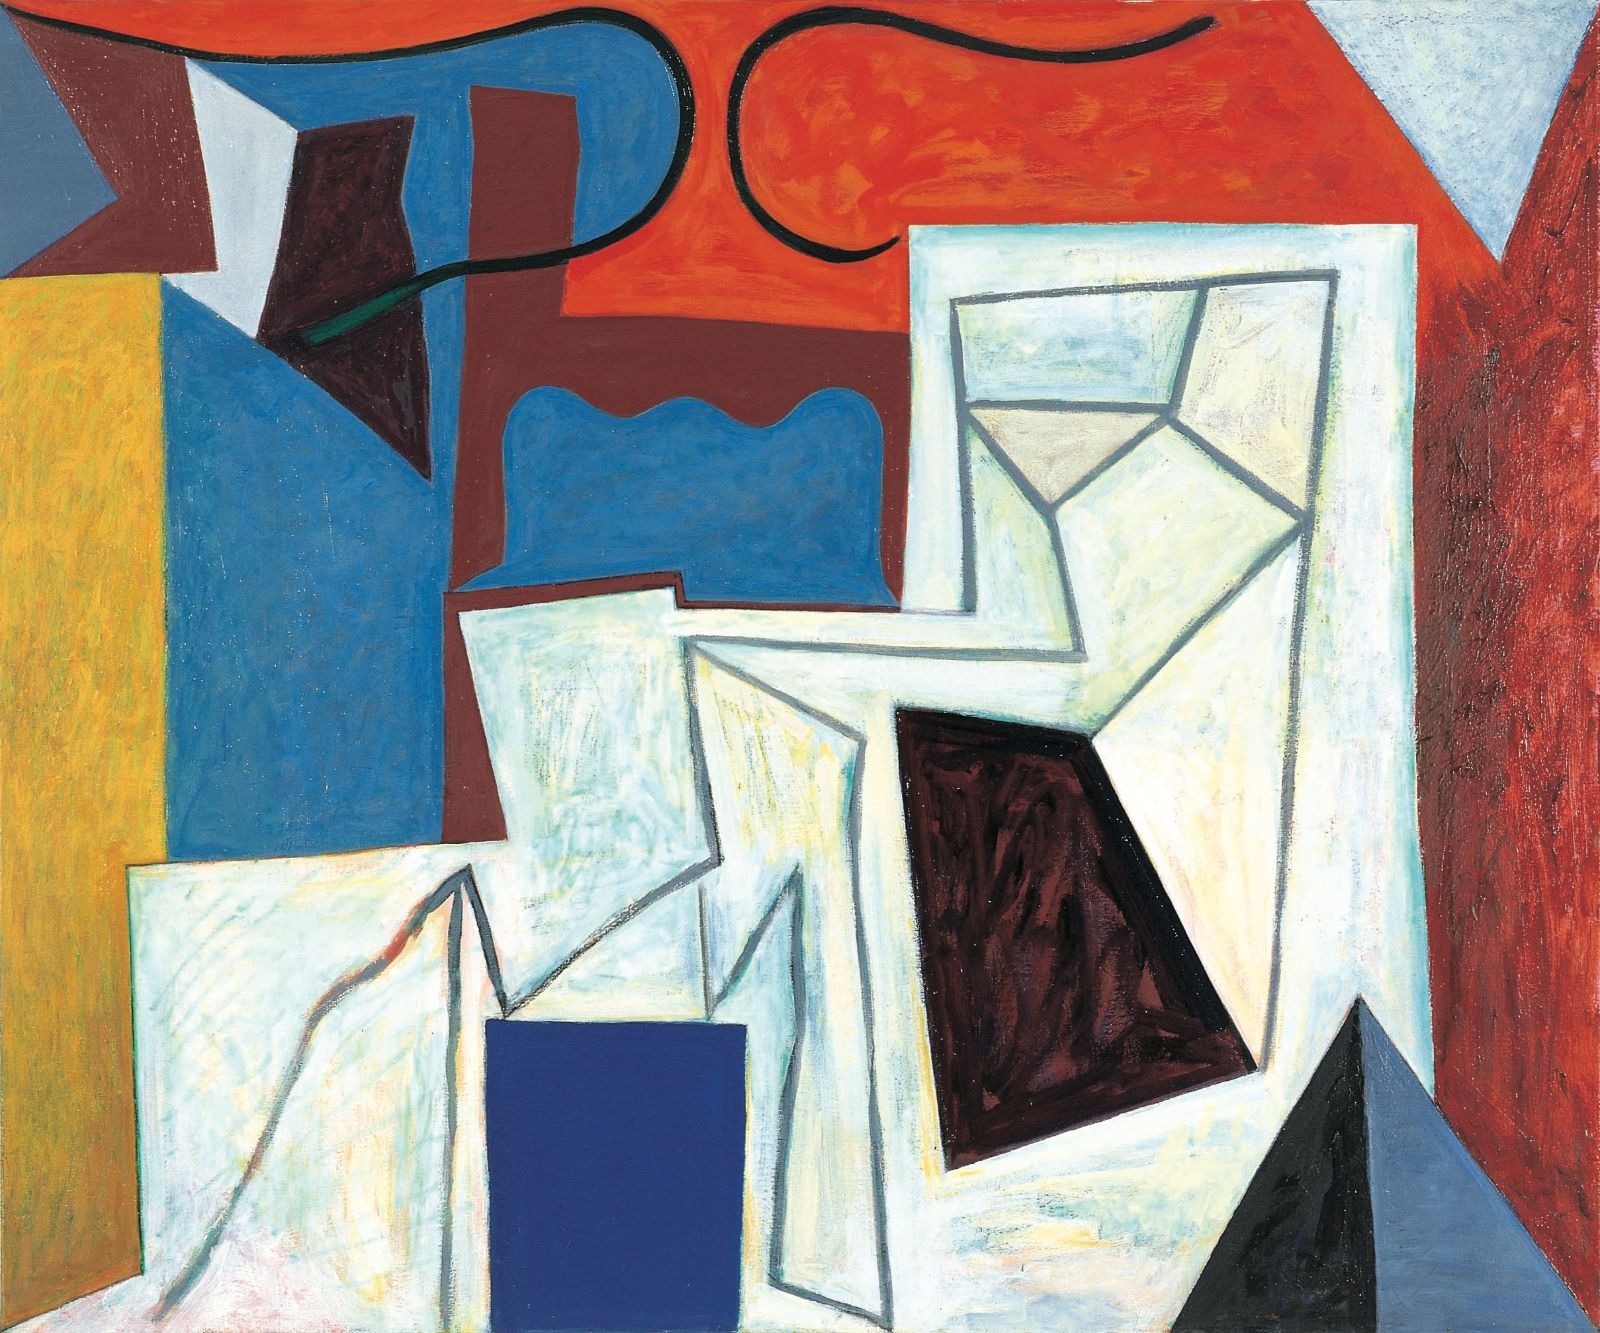 Summa summarum, 1998-99, oil and acrylic on canvas, 150 x 180 cm